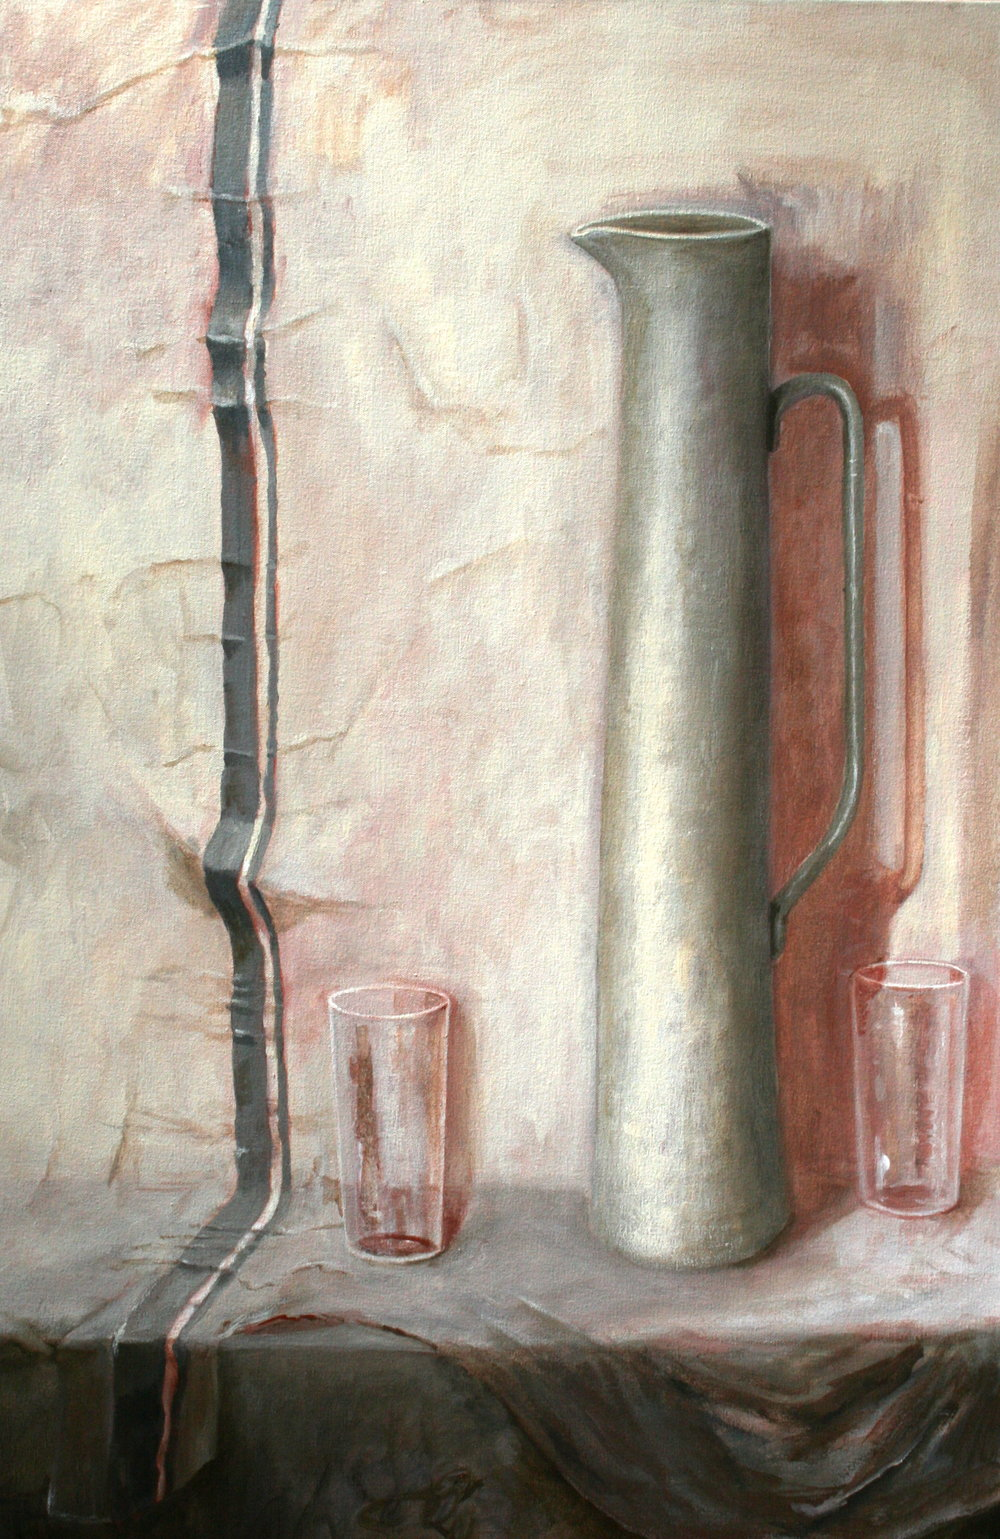 Still life with jug - Lesley Dickman